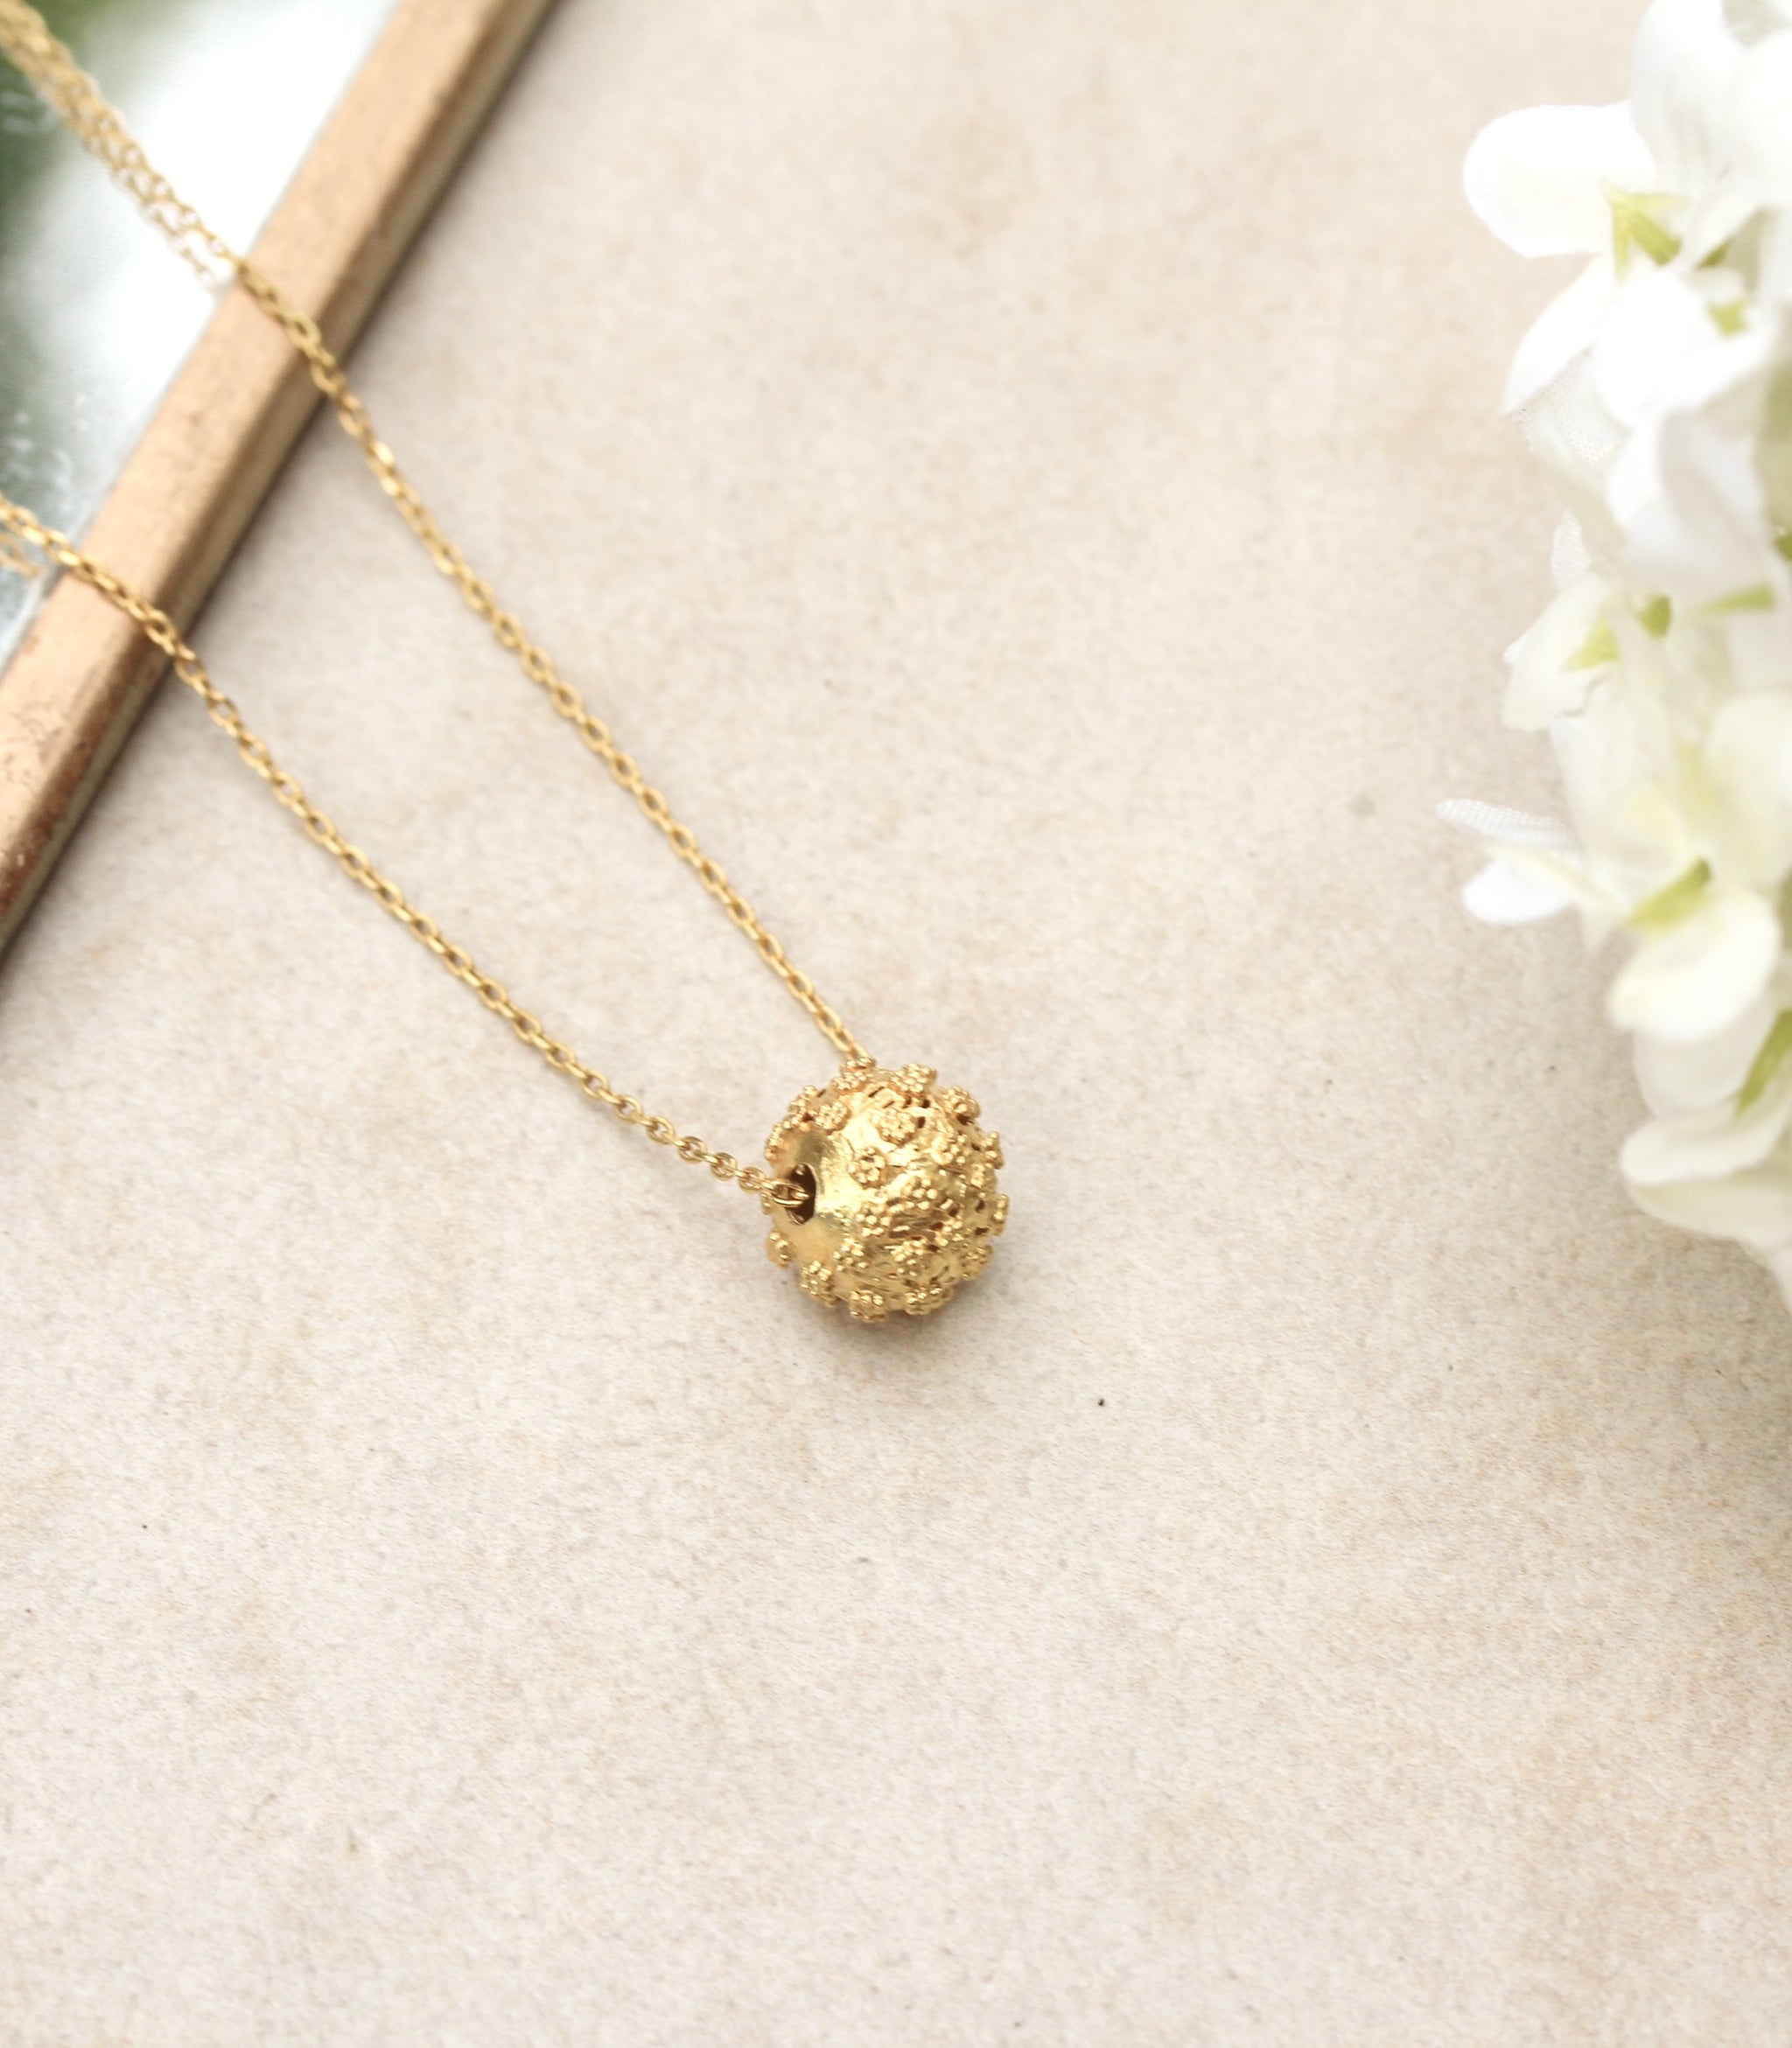 Amami Chain Pendant Necklace - AMAMI